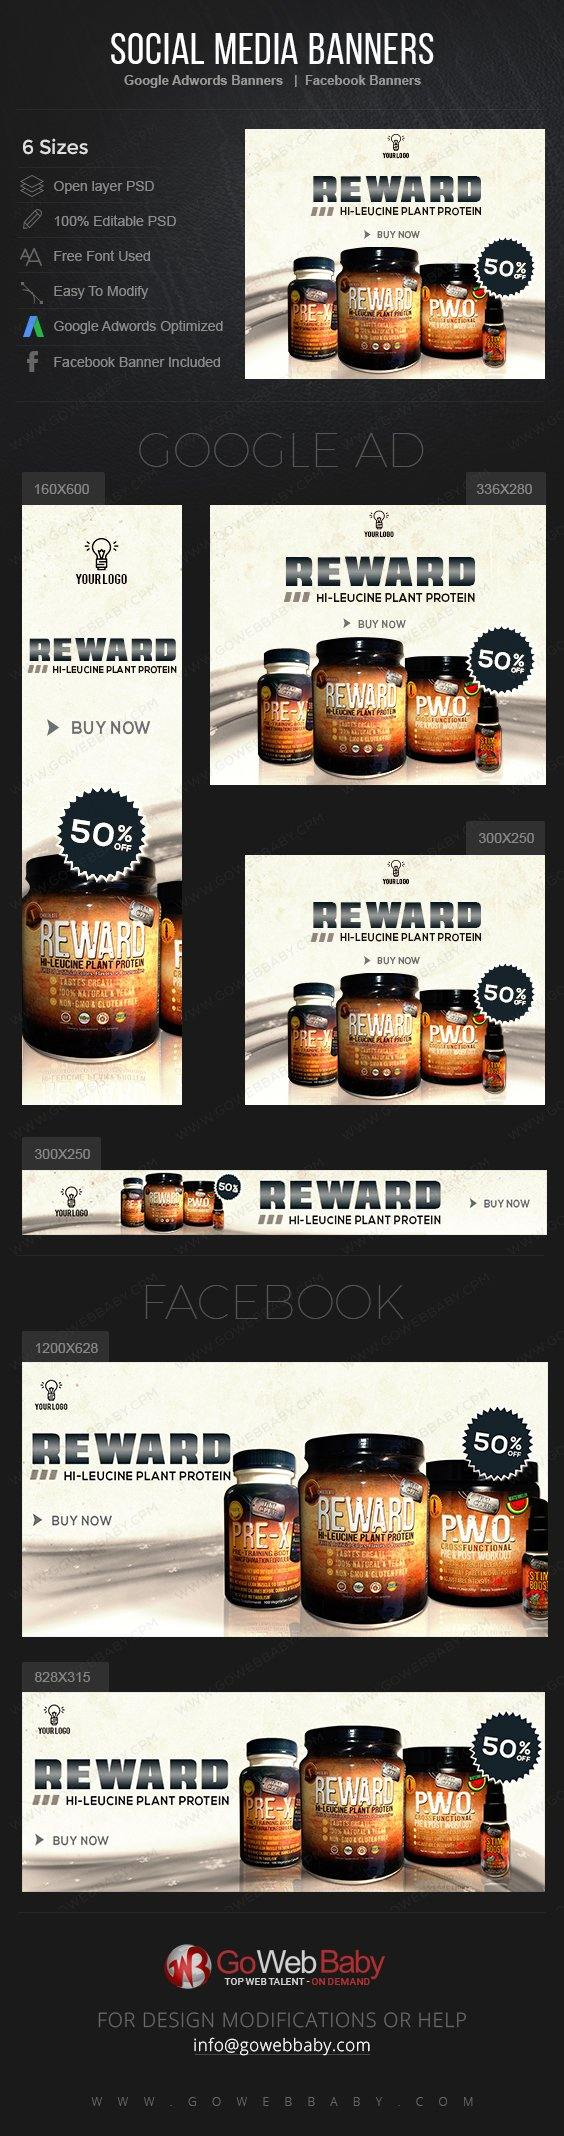 Google Adwords Display Banner with Facebook banners - Nutrition Product For Website Marketing